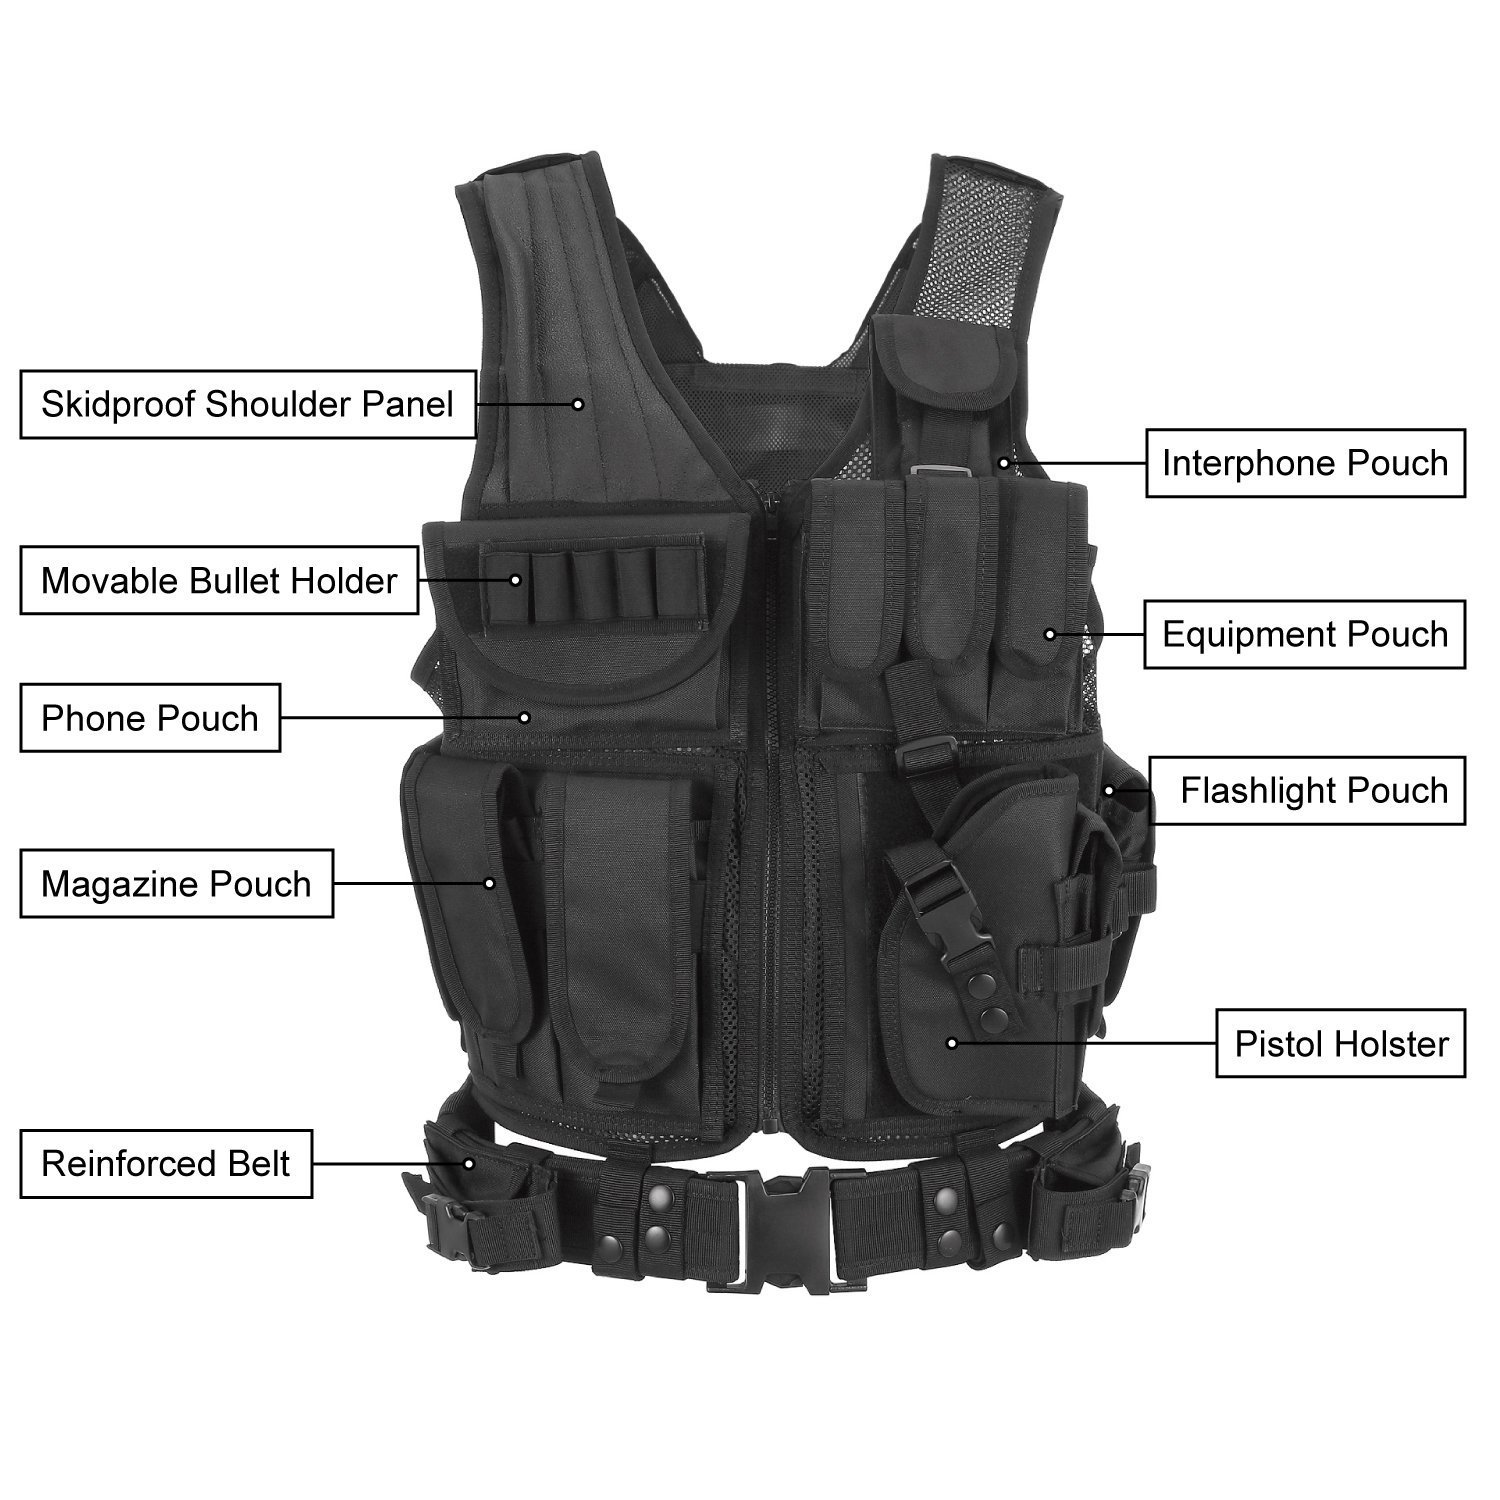 Vemico Tactical Vest Multifunctional Outdoor airsoft tactical vest Ultra-light Breathable Vest for Special Mission Combat Training Field Operations and Military Fans tactical vest adult black